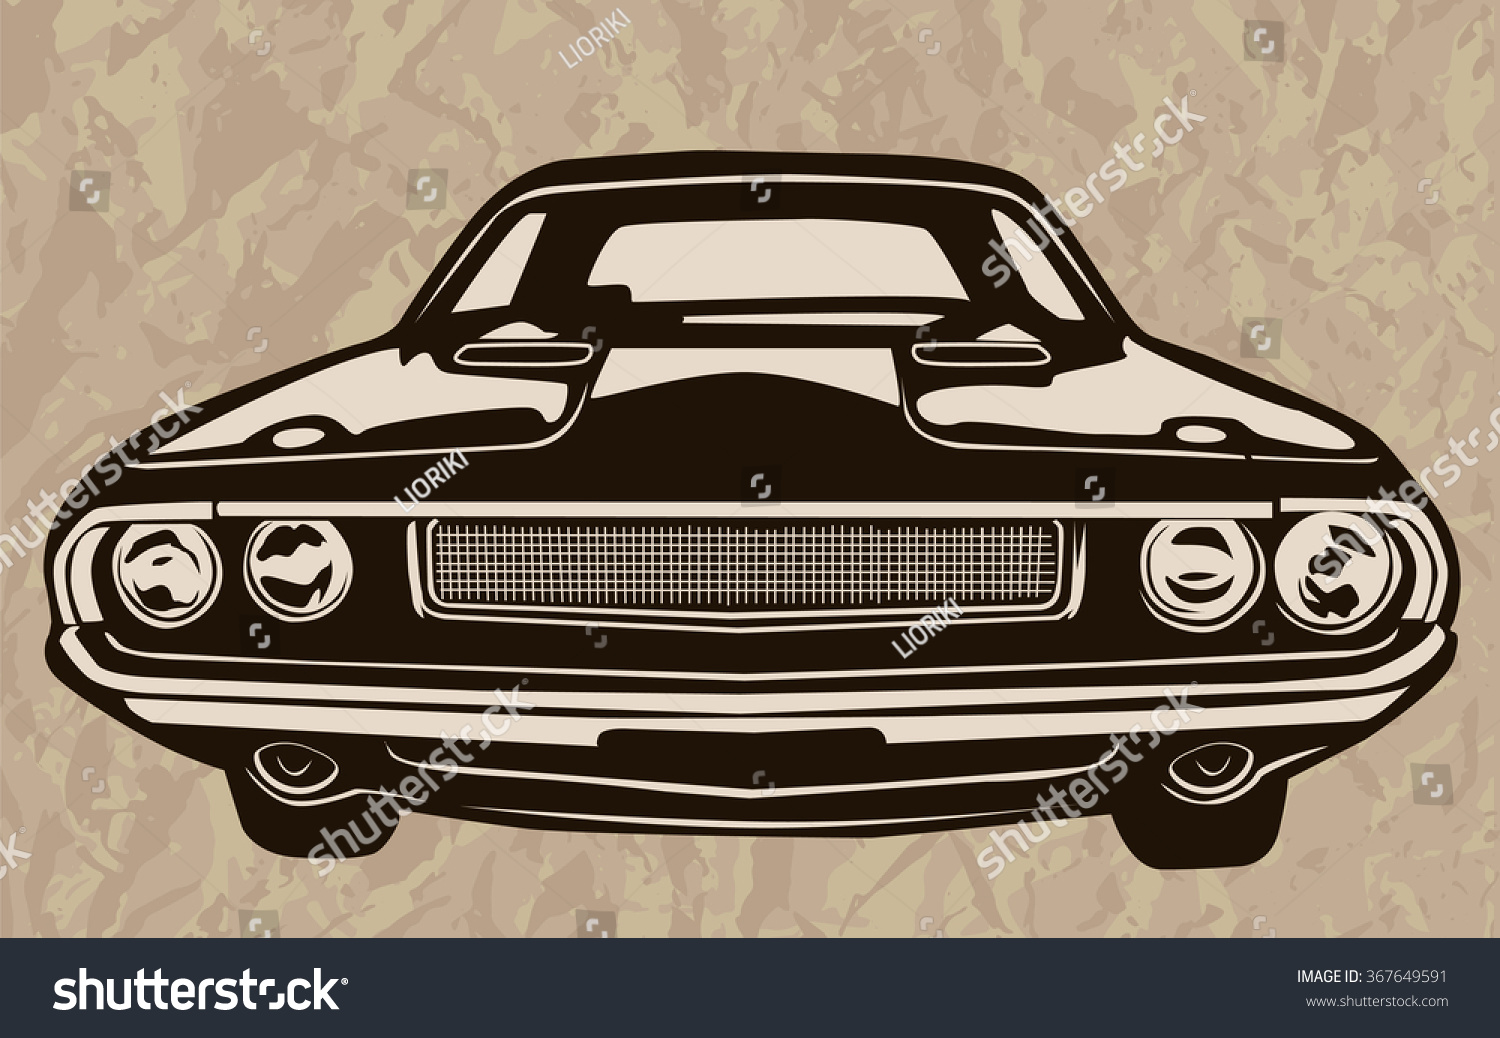 Retro Muscle Cars Inspired Cartoon Sketch Stock Vector